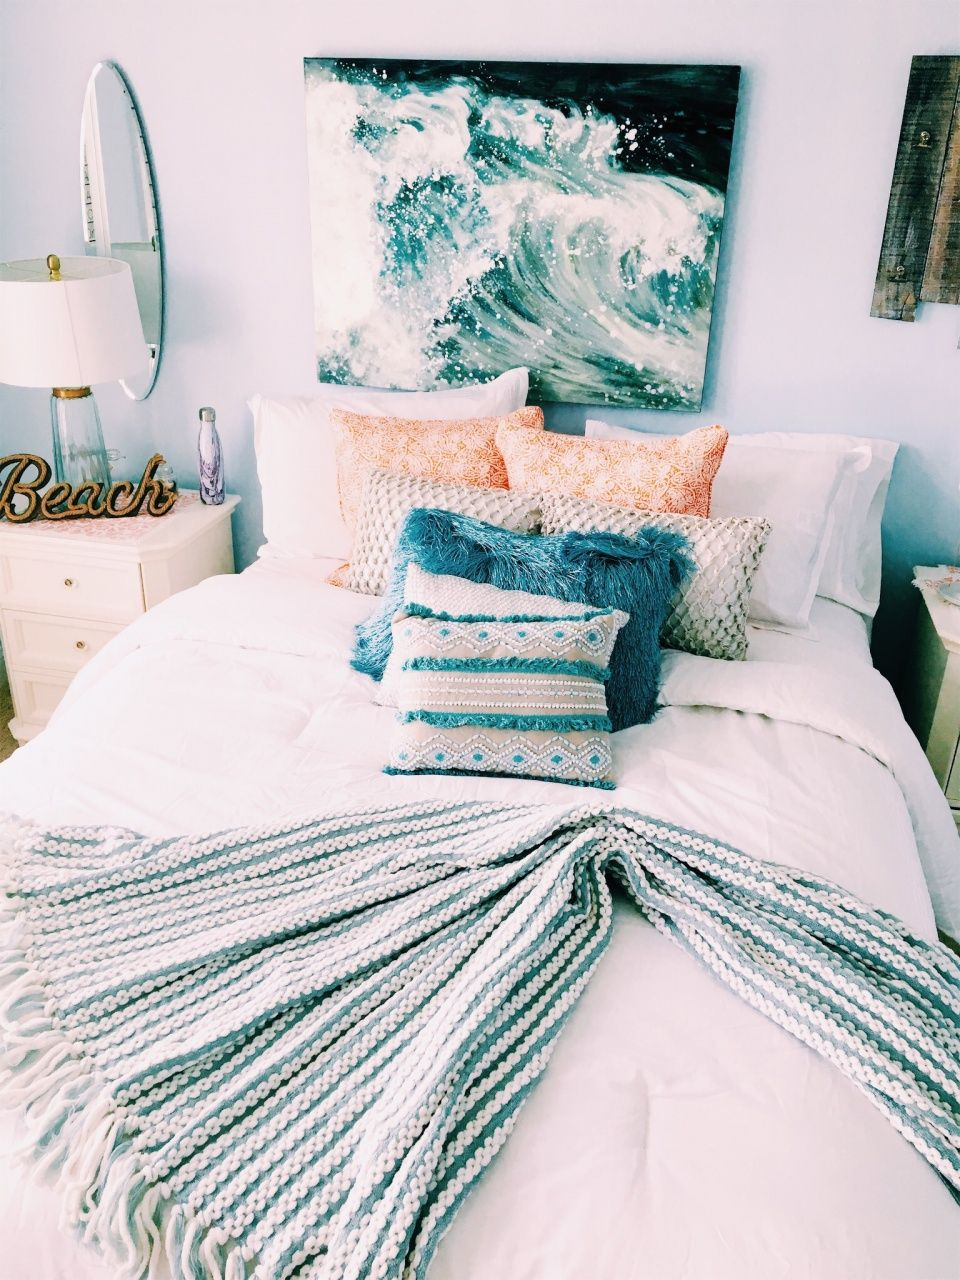 Vsco Aleenaorr Collection Home Bedroom Dorm Room Decor